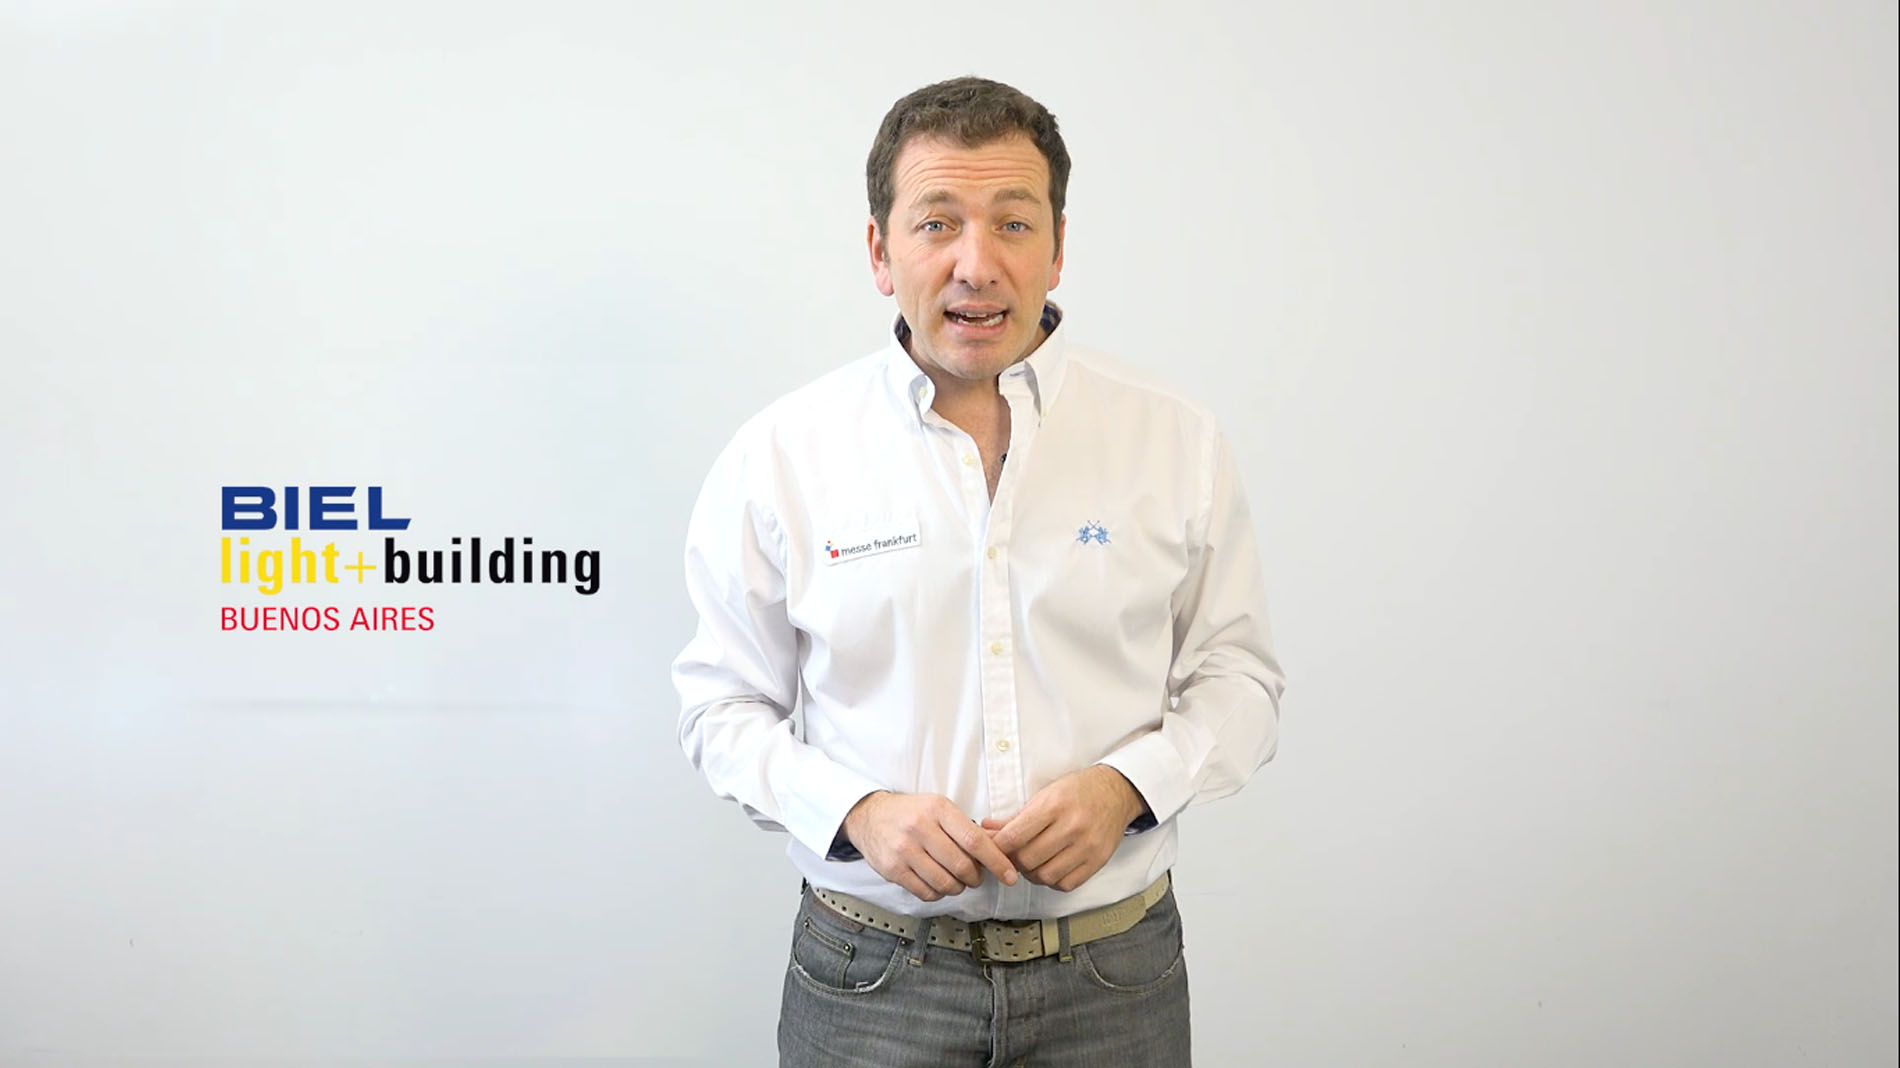 BIEL Light + Building Buenos Aires: Instructional videos